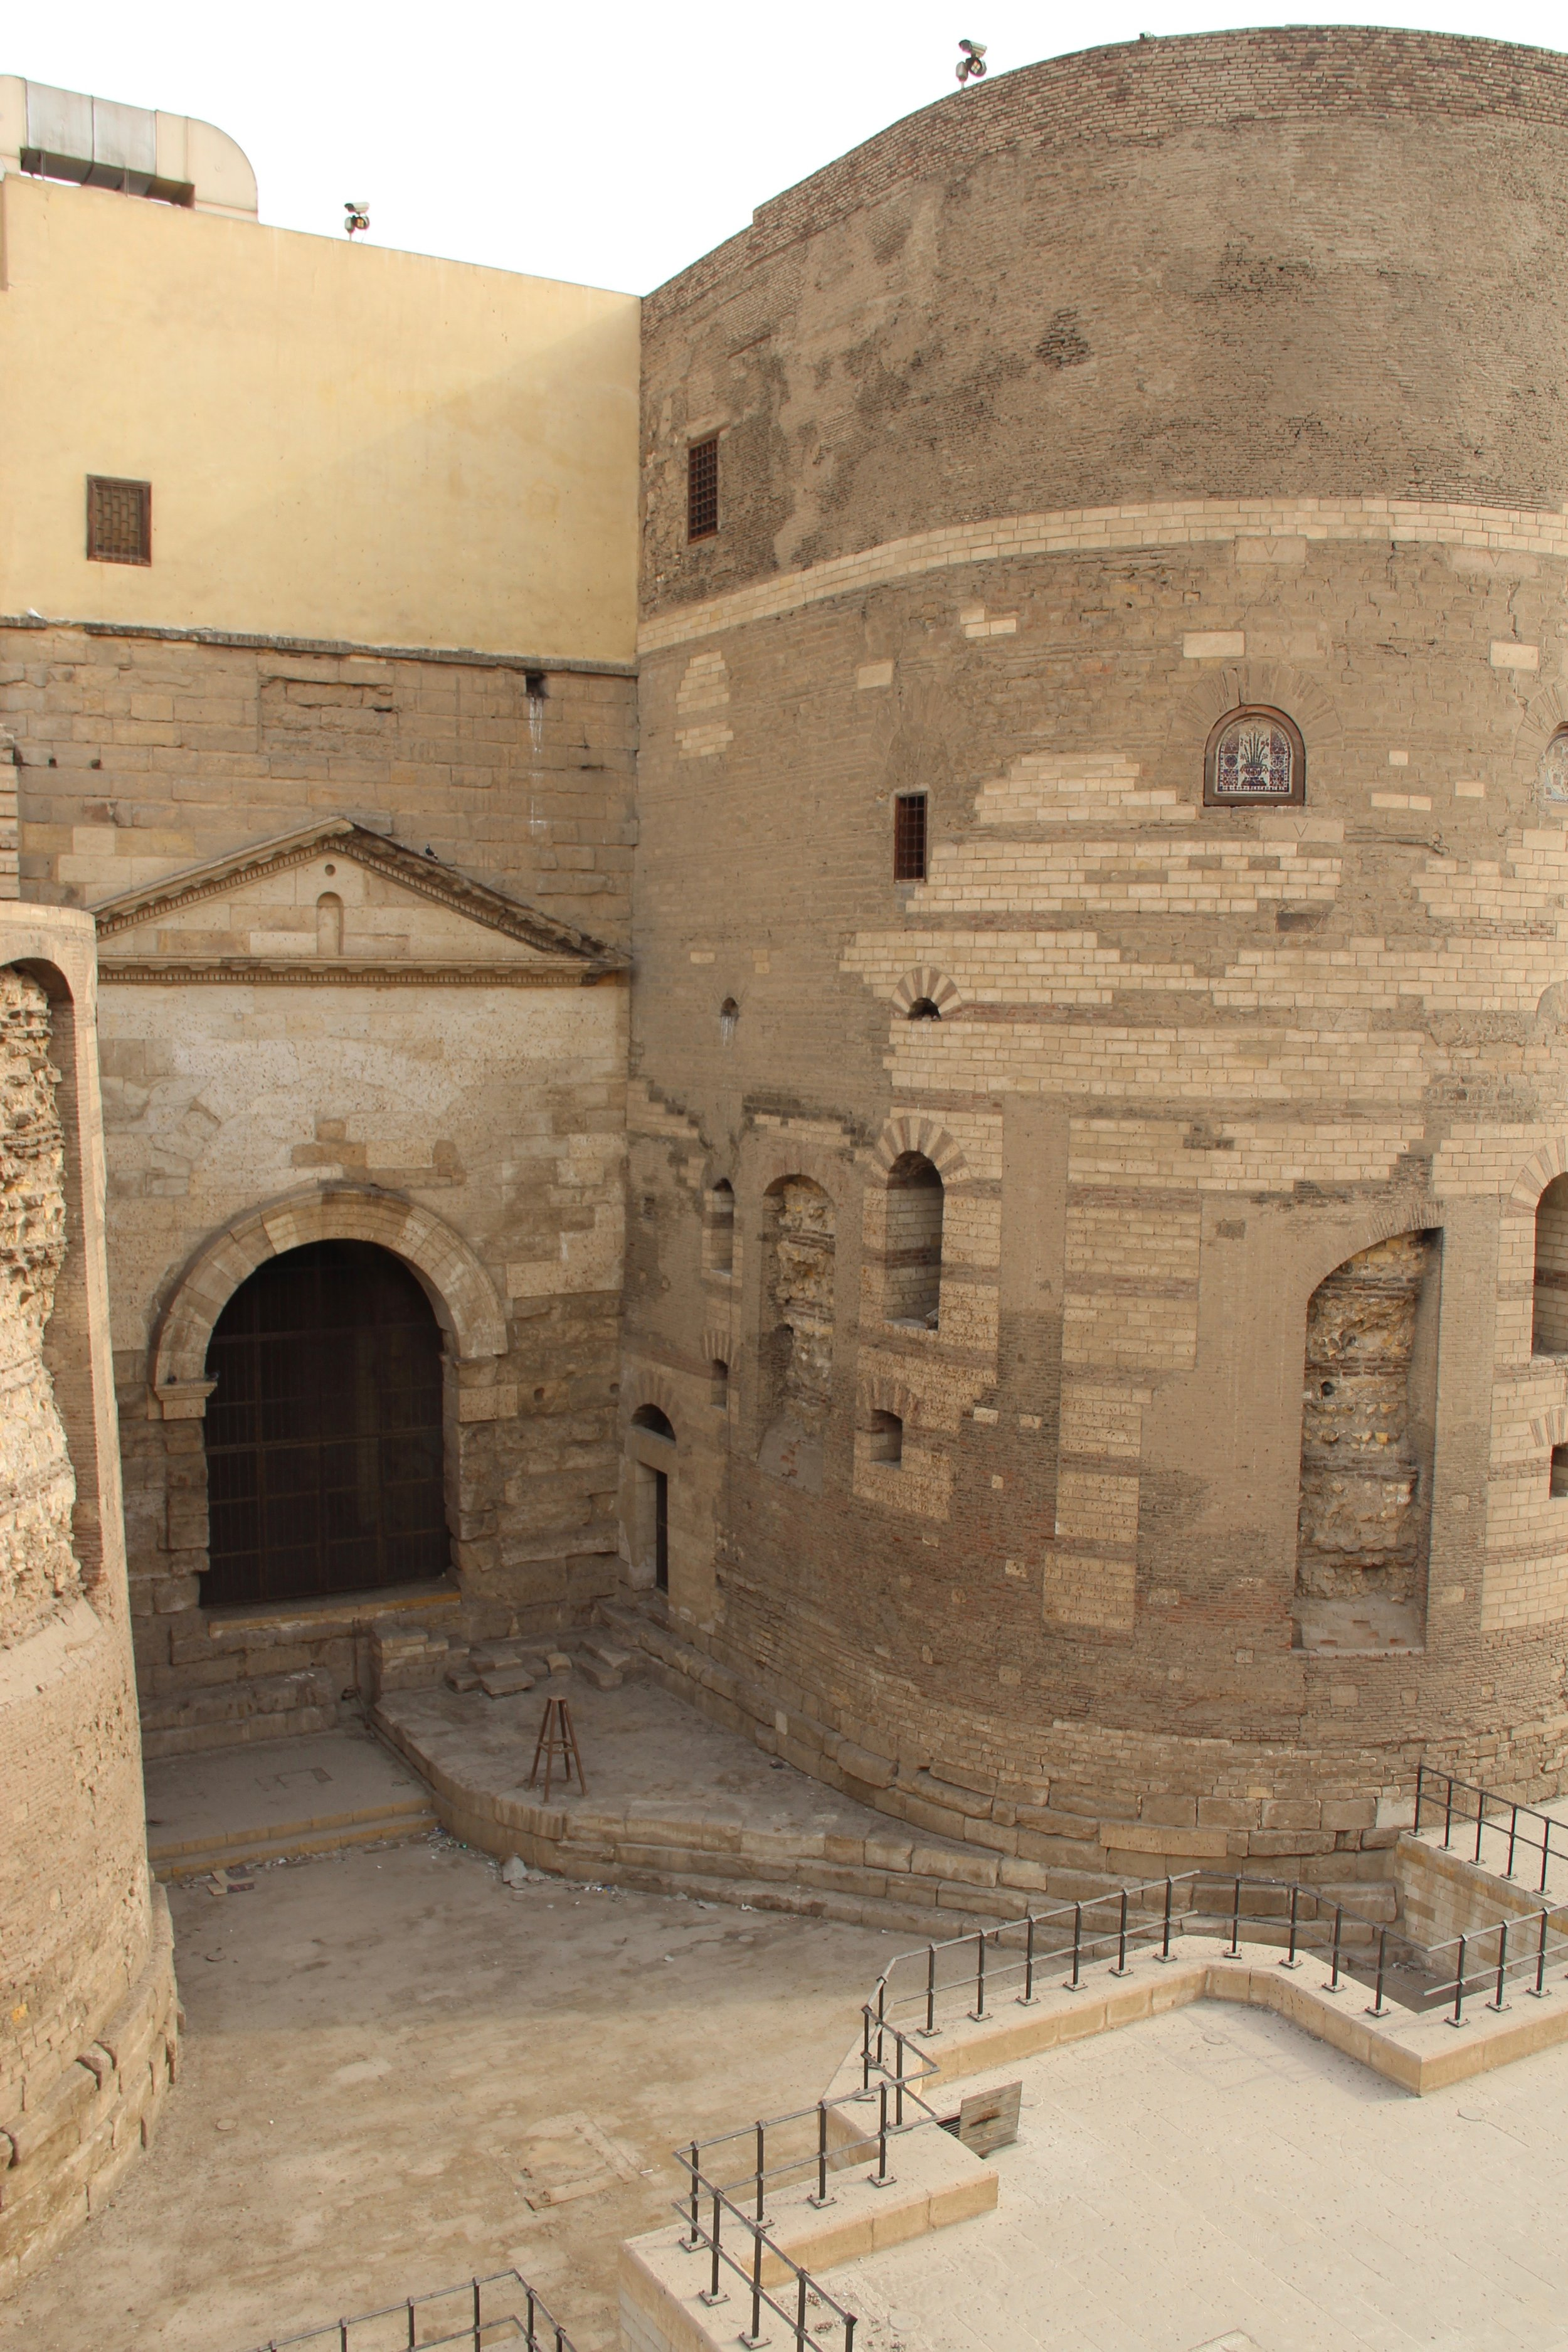 Outside the Hanging Church, built into a Roman fort